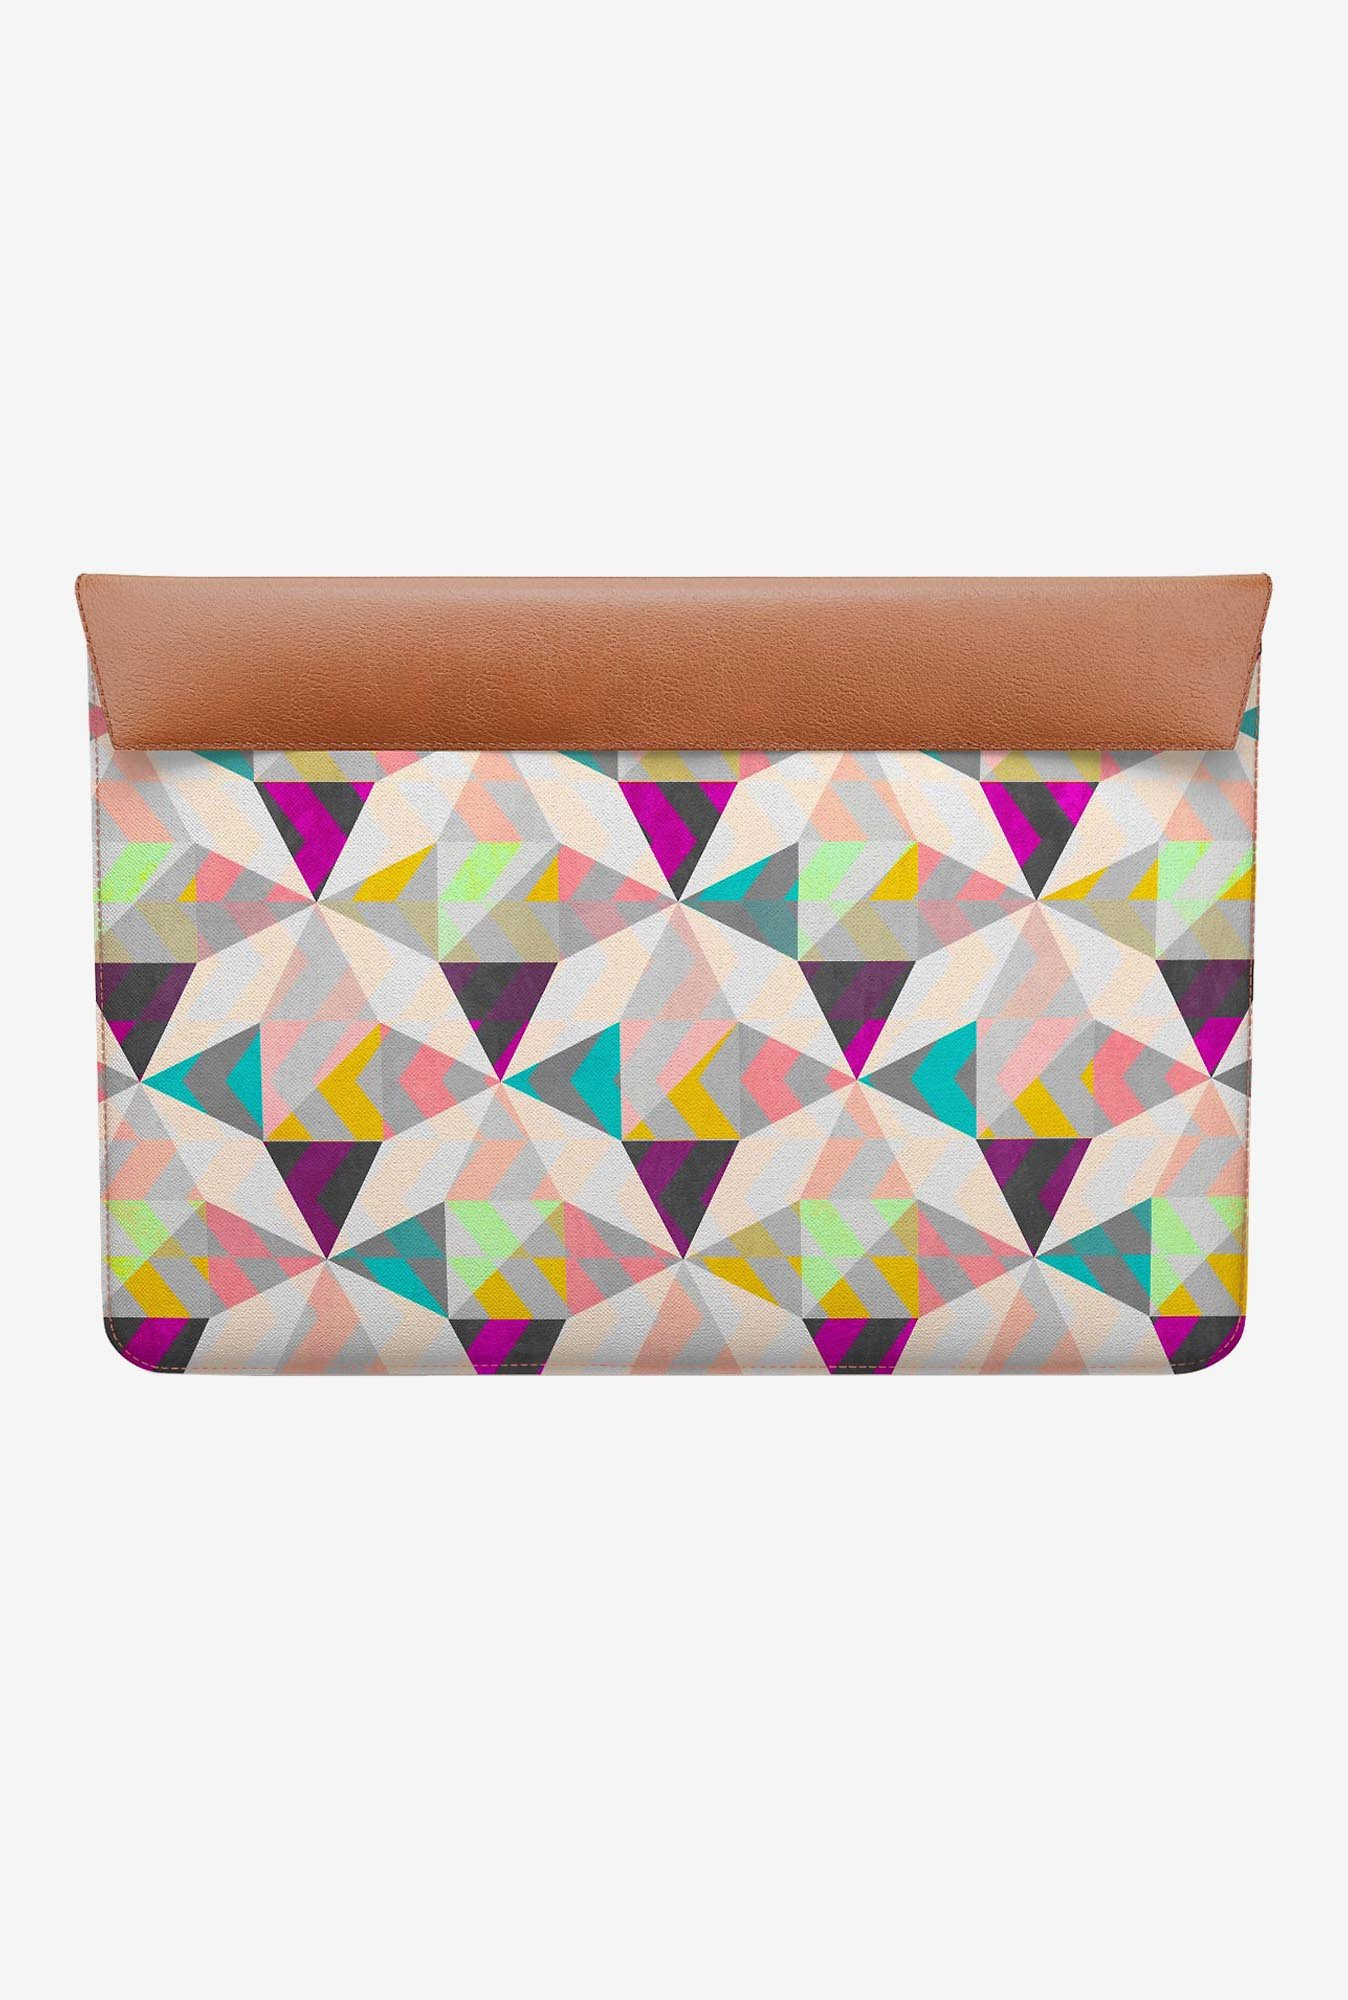 DailyObjects True diamonds MacBook Air 11 Envelope Sleeve